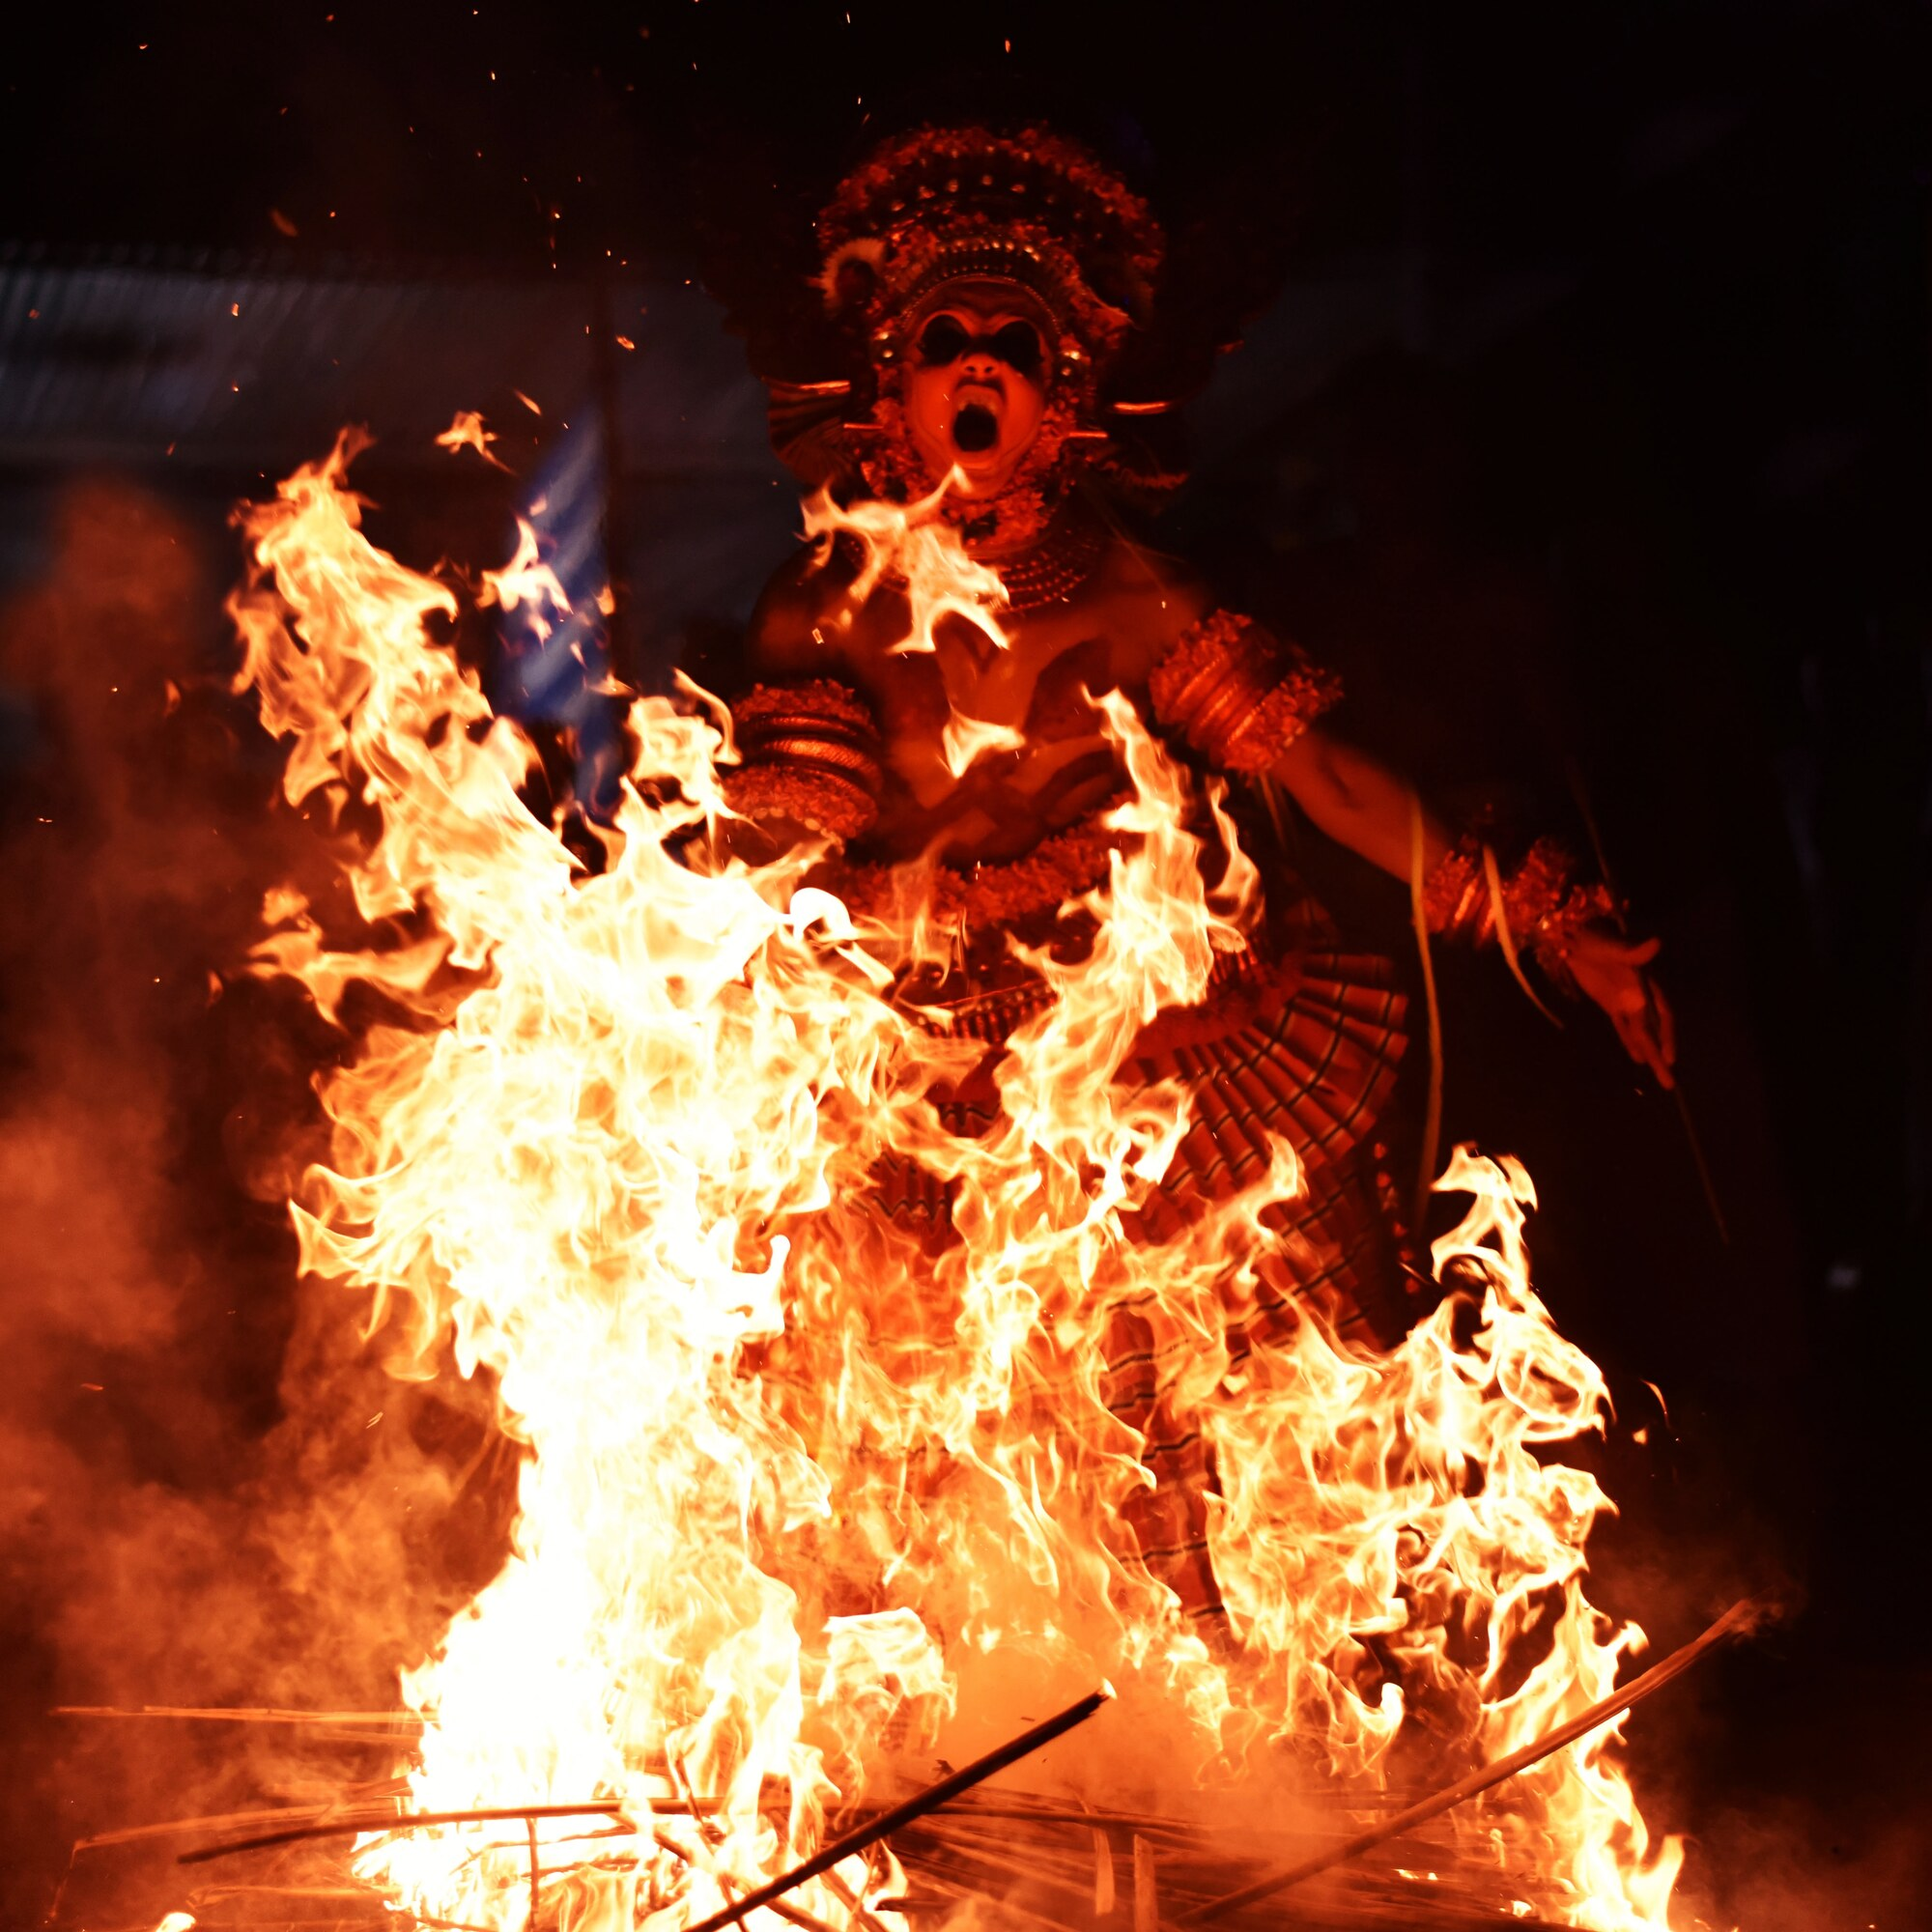 It was from a traditional theyyam event in Kerala so that red ambience from fire , made me feel strong on human cultures and practices